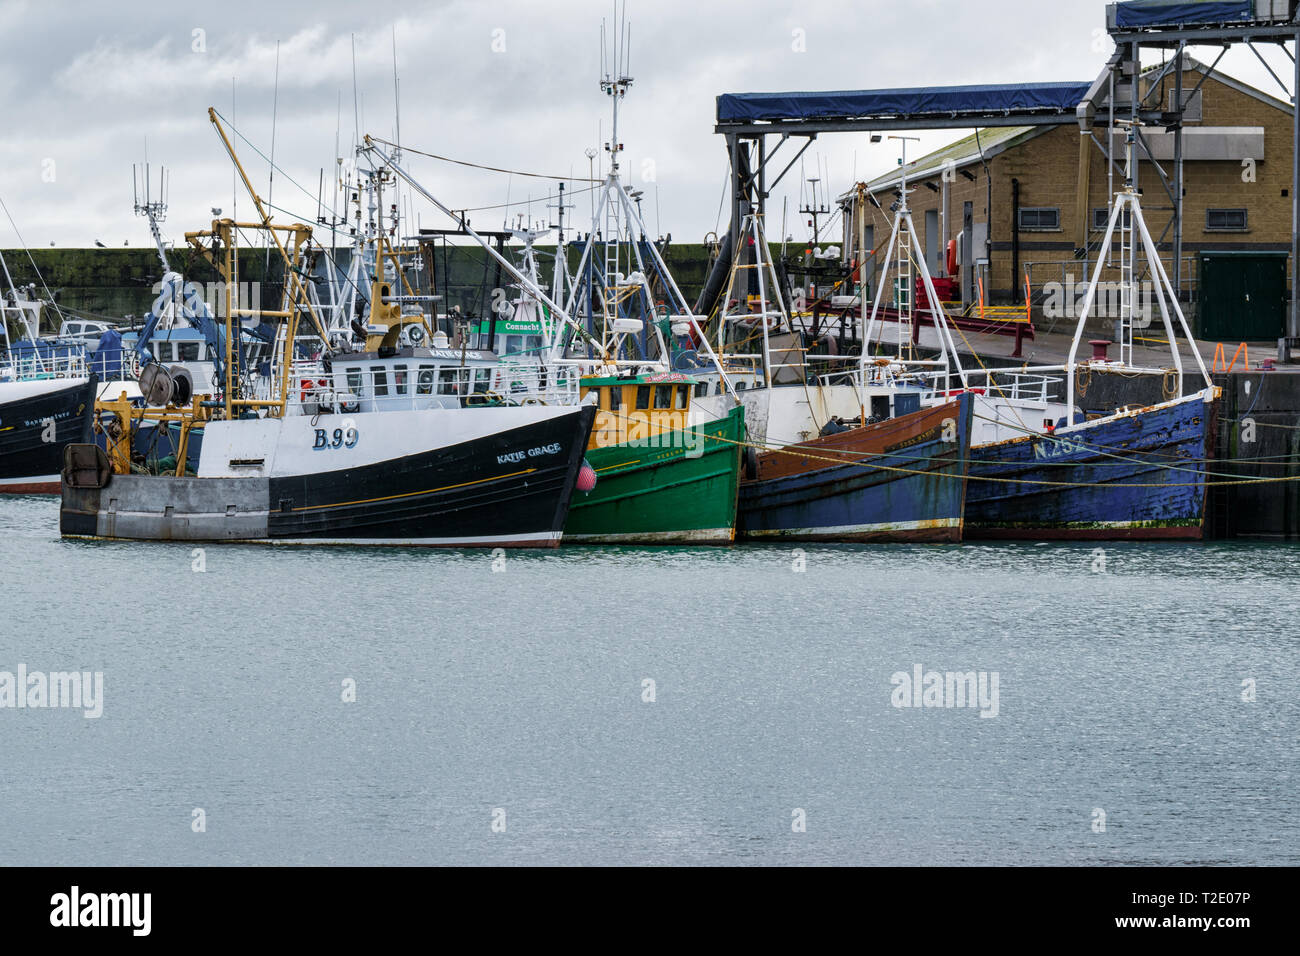 Ardgalss, Northern Ireland -  March 17, 2019 : This is a picture of Ardglass harbour and its fishing boat  fleet  in County Down, Northern Ireland - Stock Image